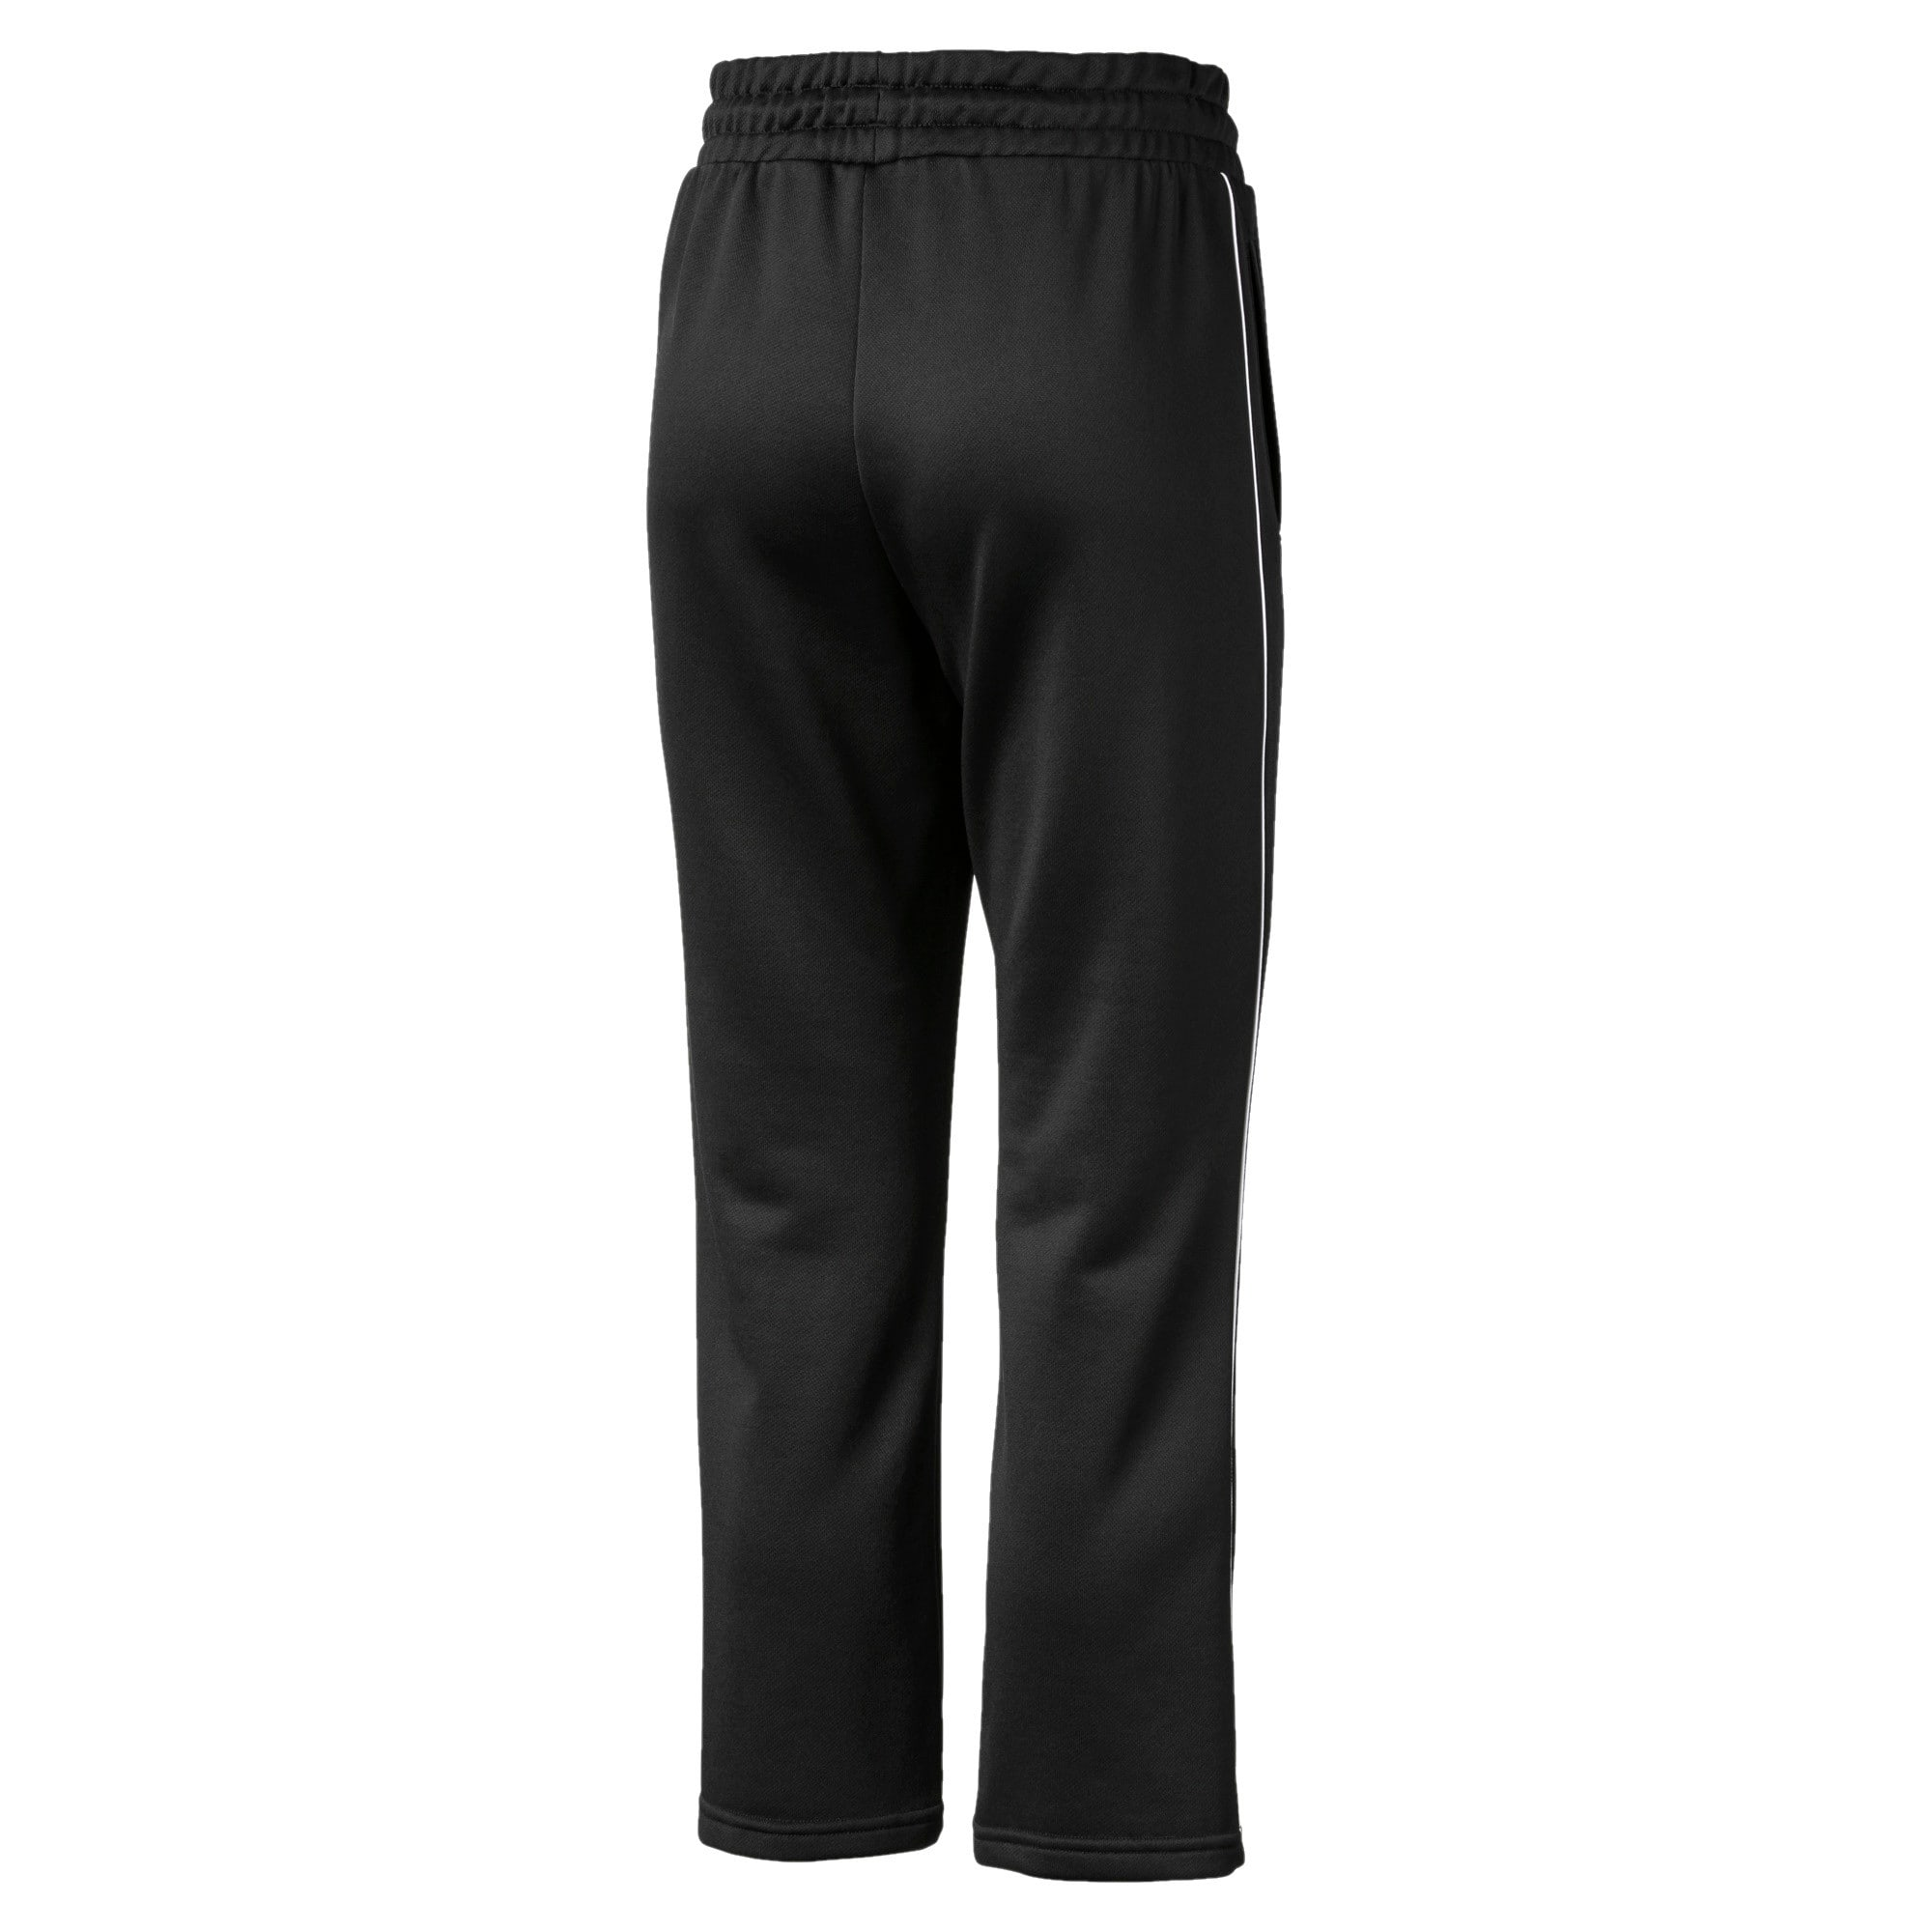 Thumbnail 5 of Classics Kick Flare Knitted Women's Pants, Puma Black, medium